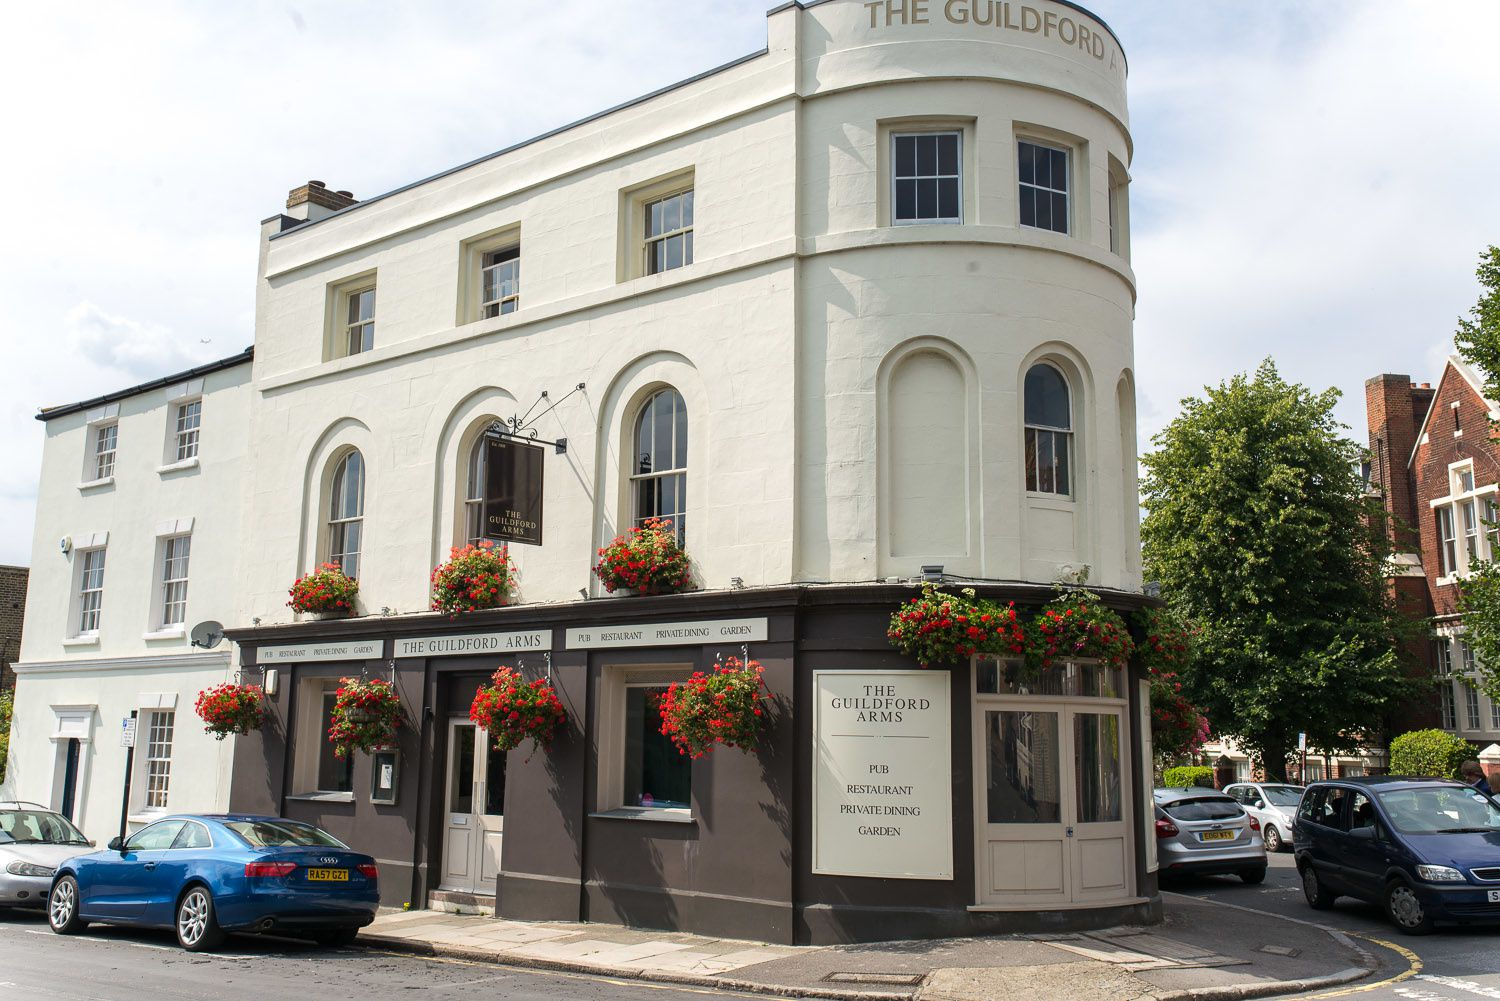 The Guildford Arms in Greenwich